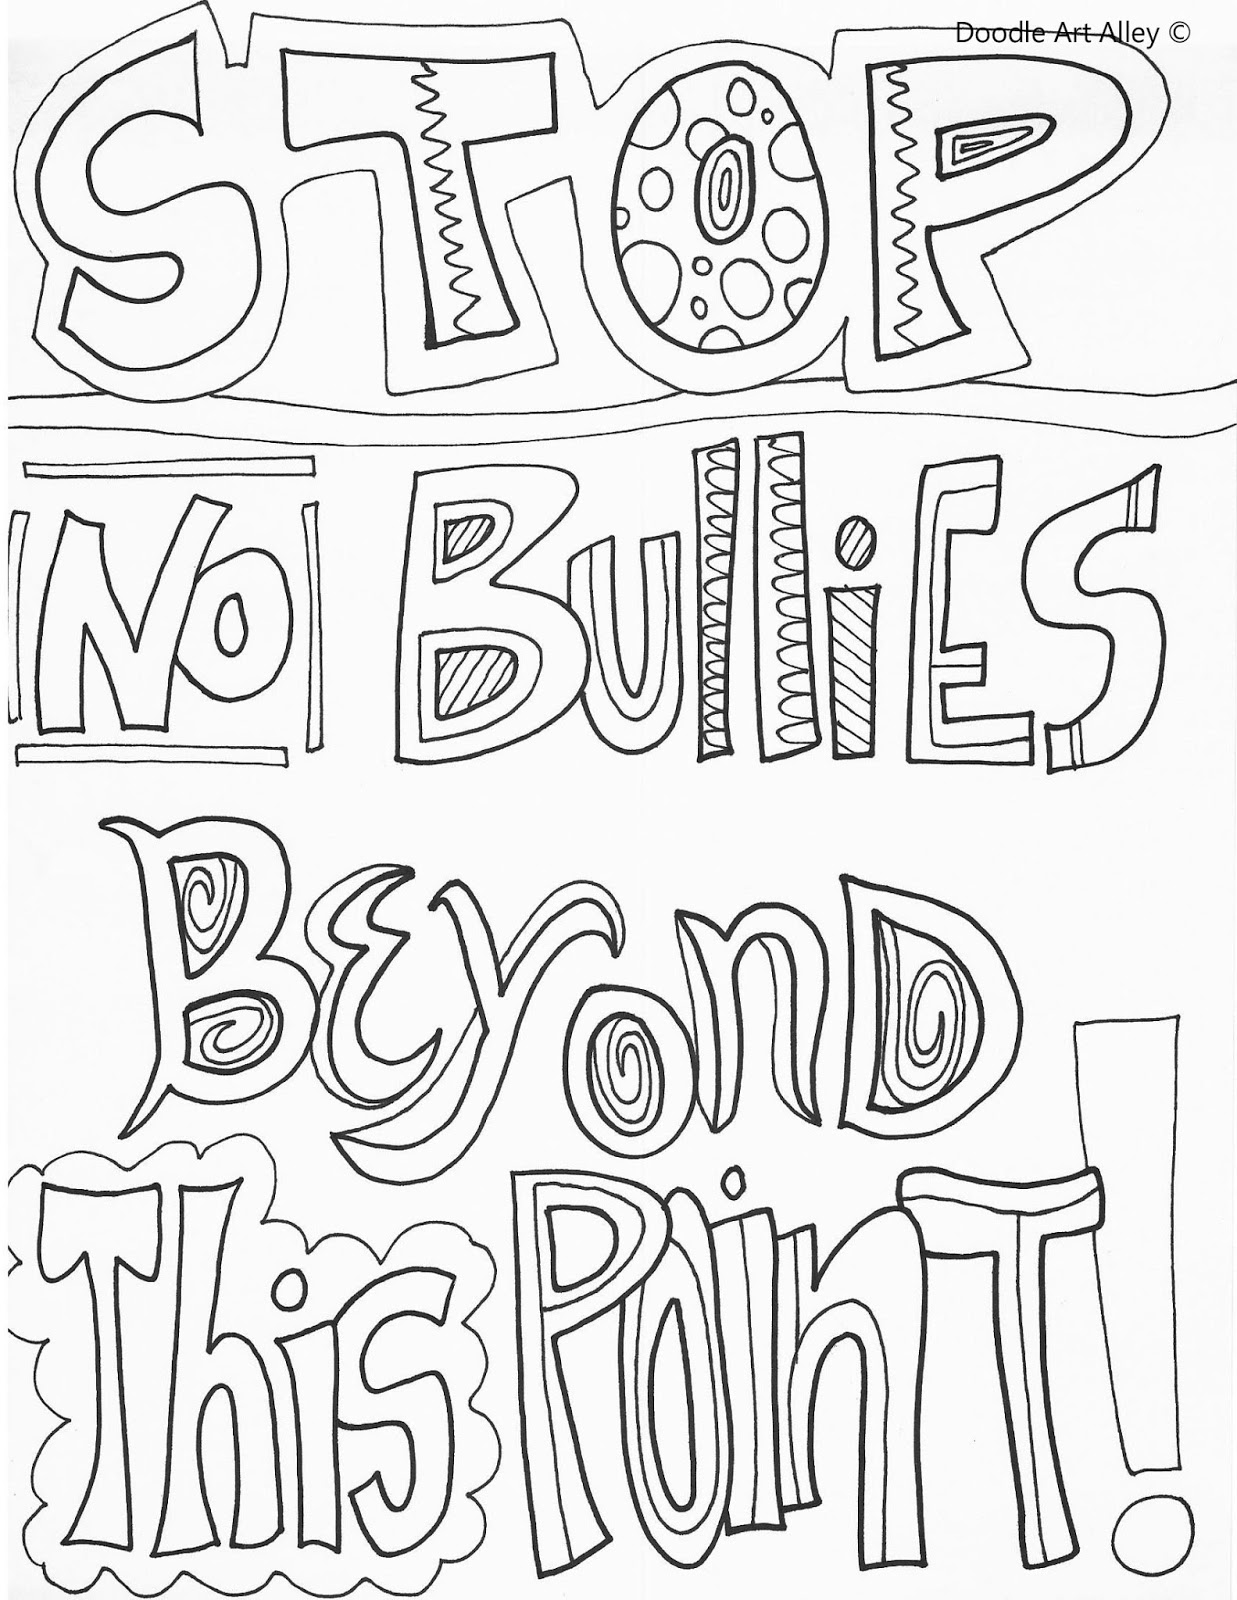 free stop bullying coloring pages | Counseling Corner